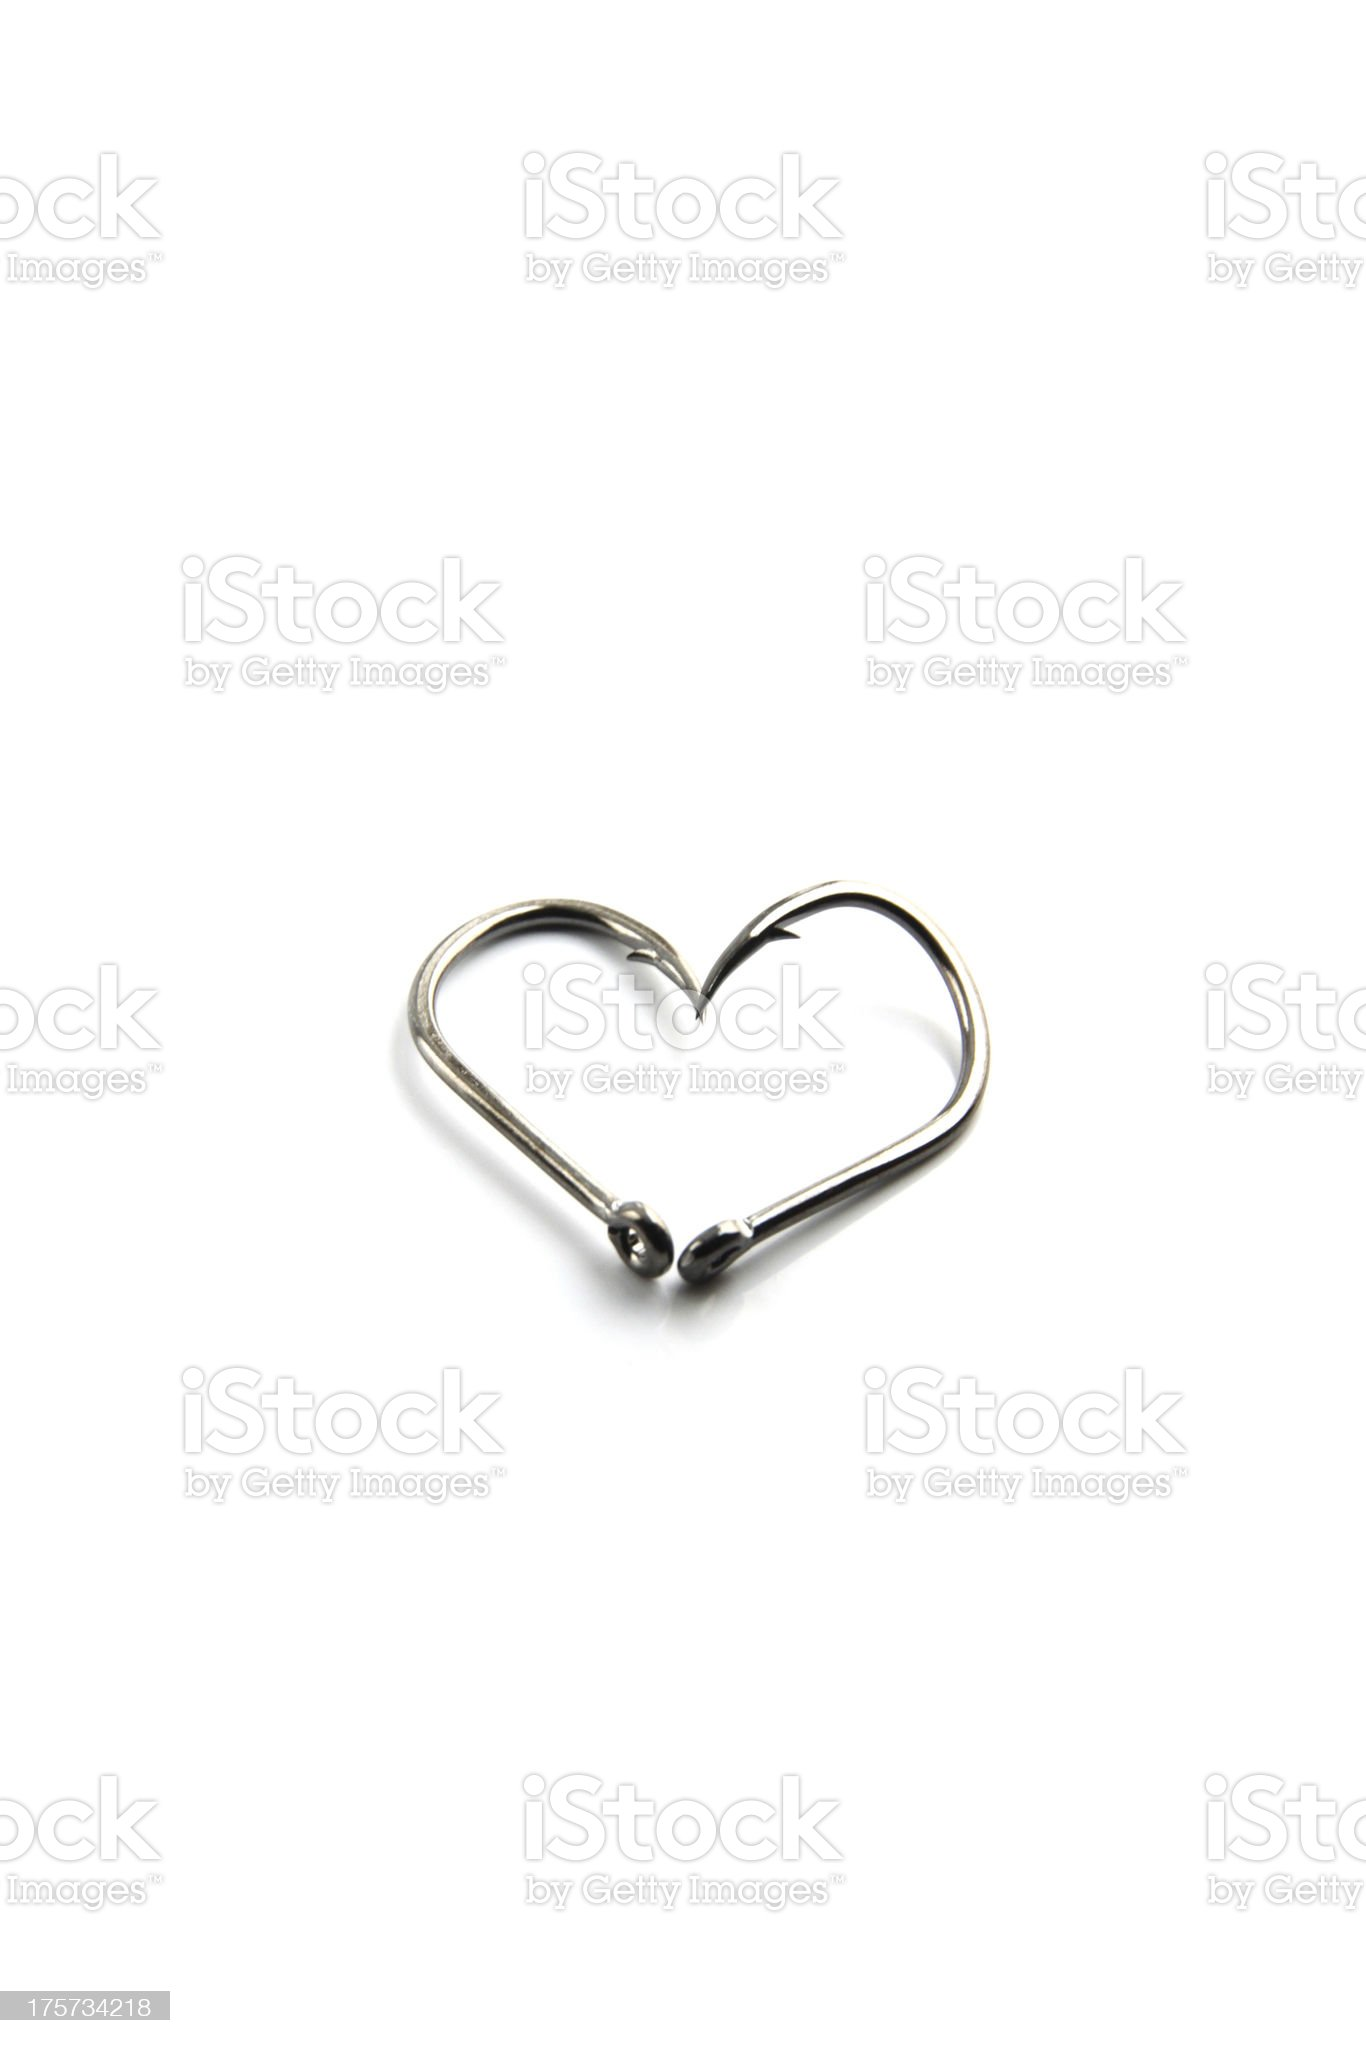 The Hooks is fishing,A heart-shaped hook. royalty-free stock photo